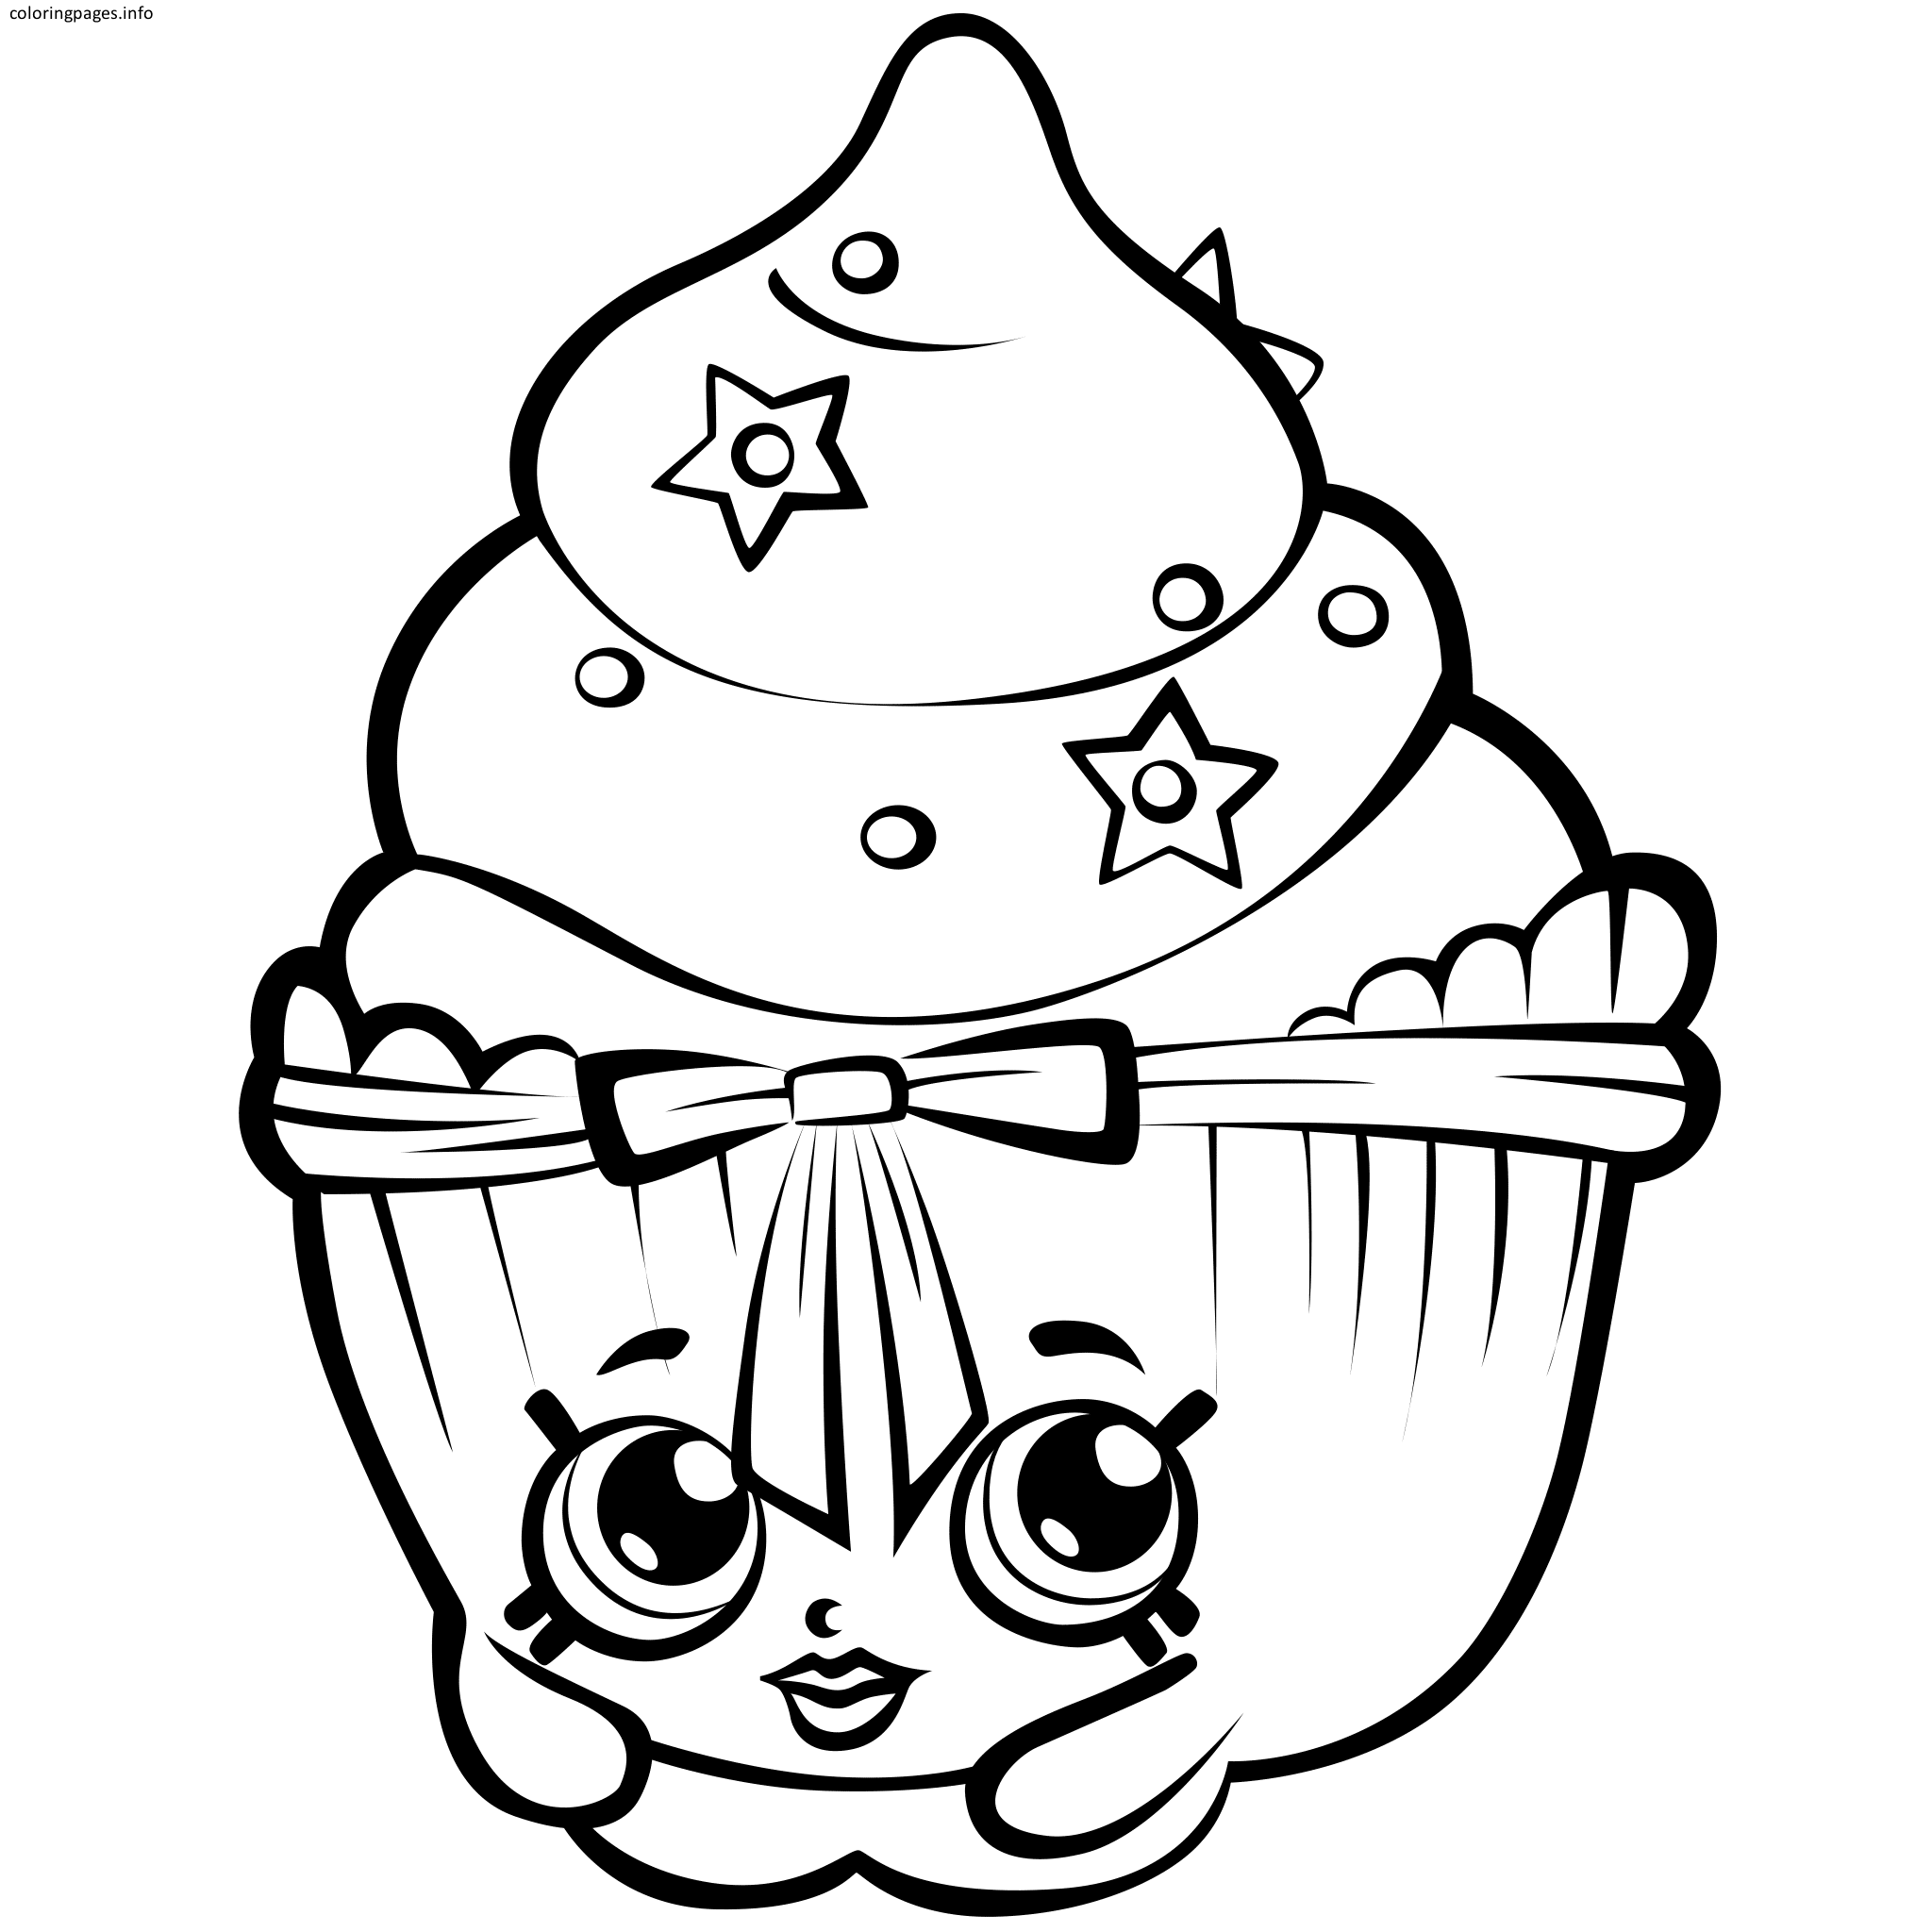 Printable Shopkins Coloring Pages